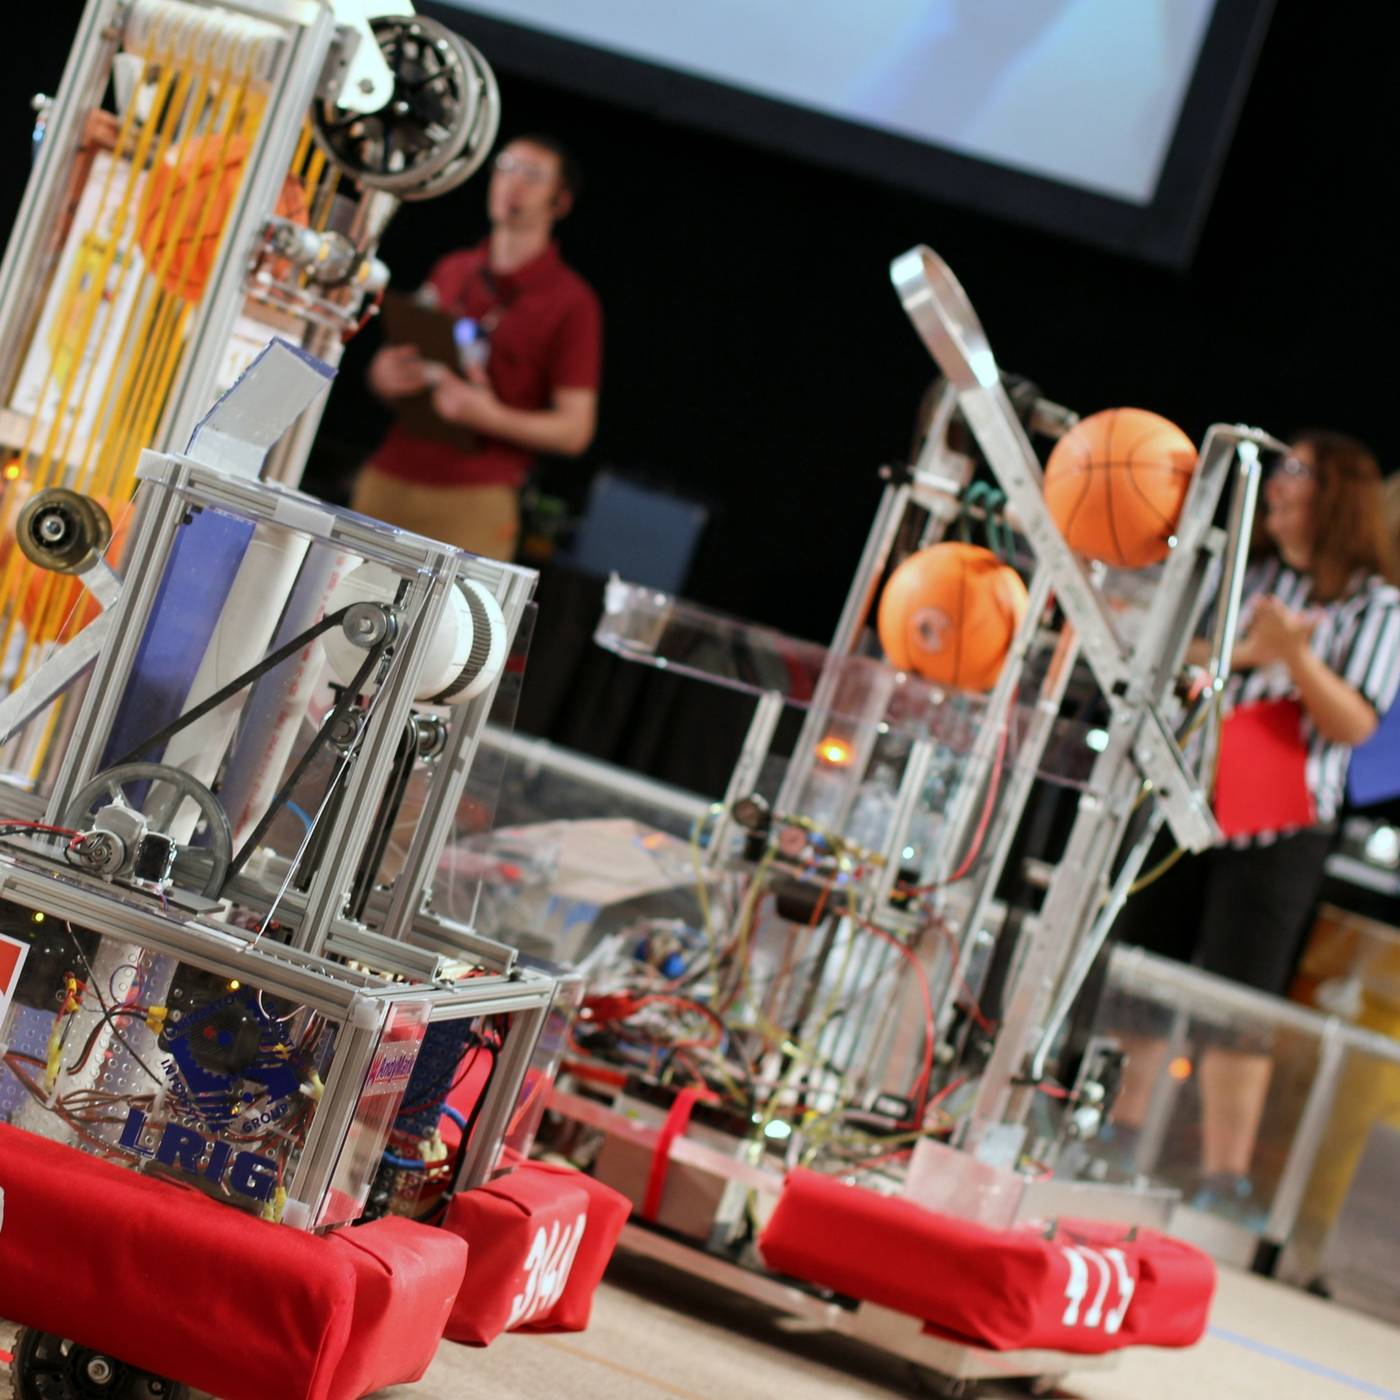 Support your school robotics team, and give it as a gift